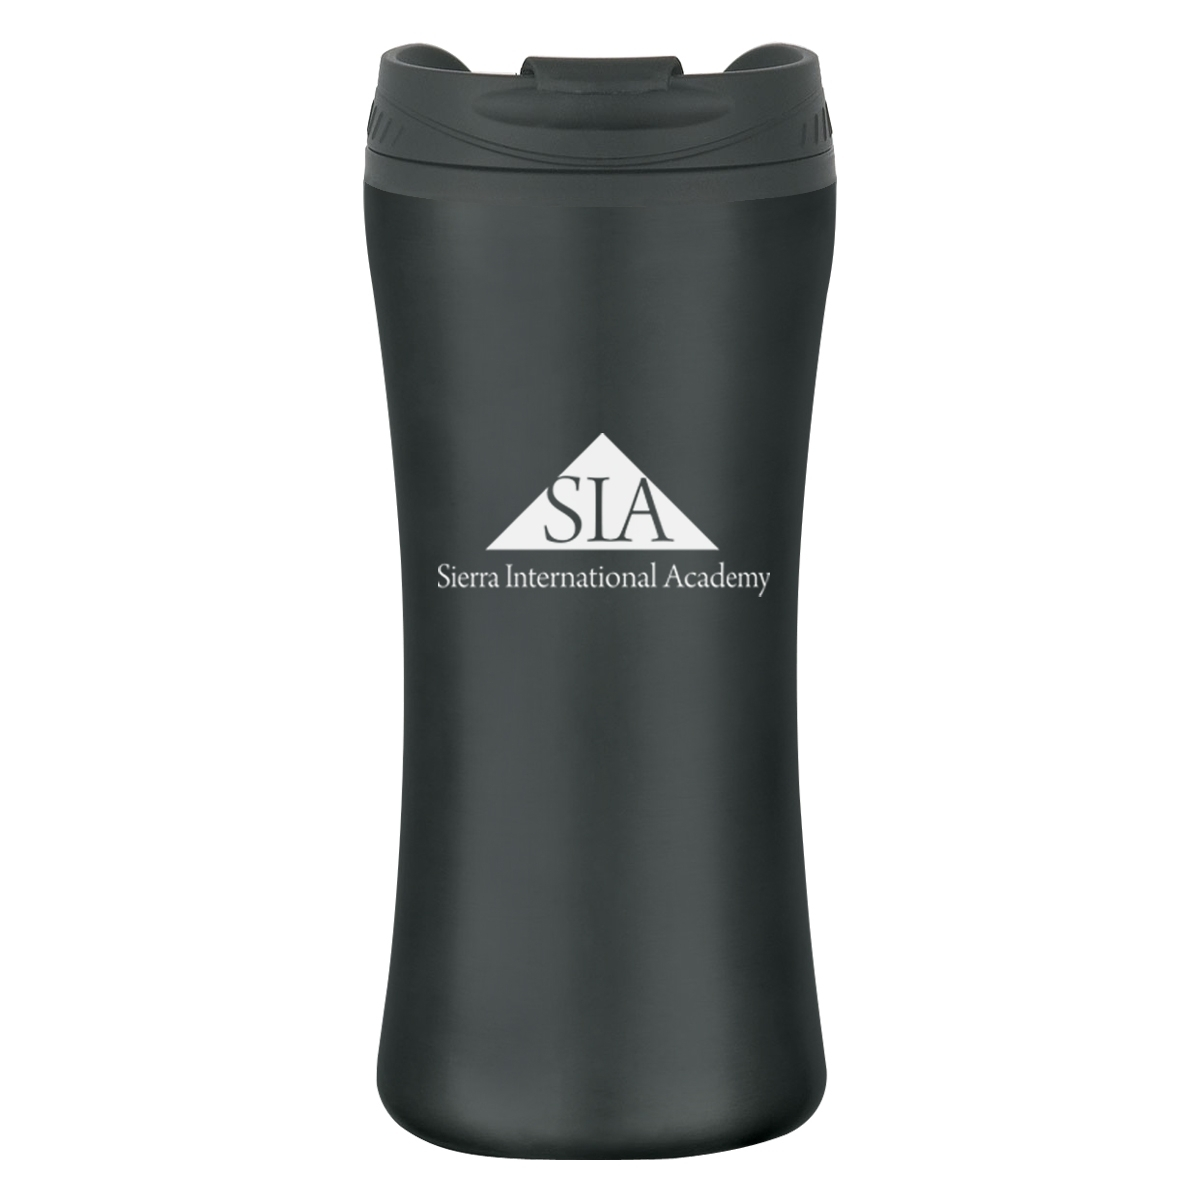 Stainless Steel Double Wall Tumbler, 15 oz.